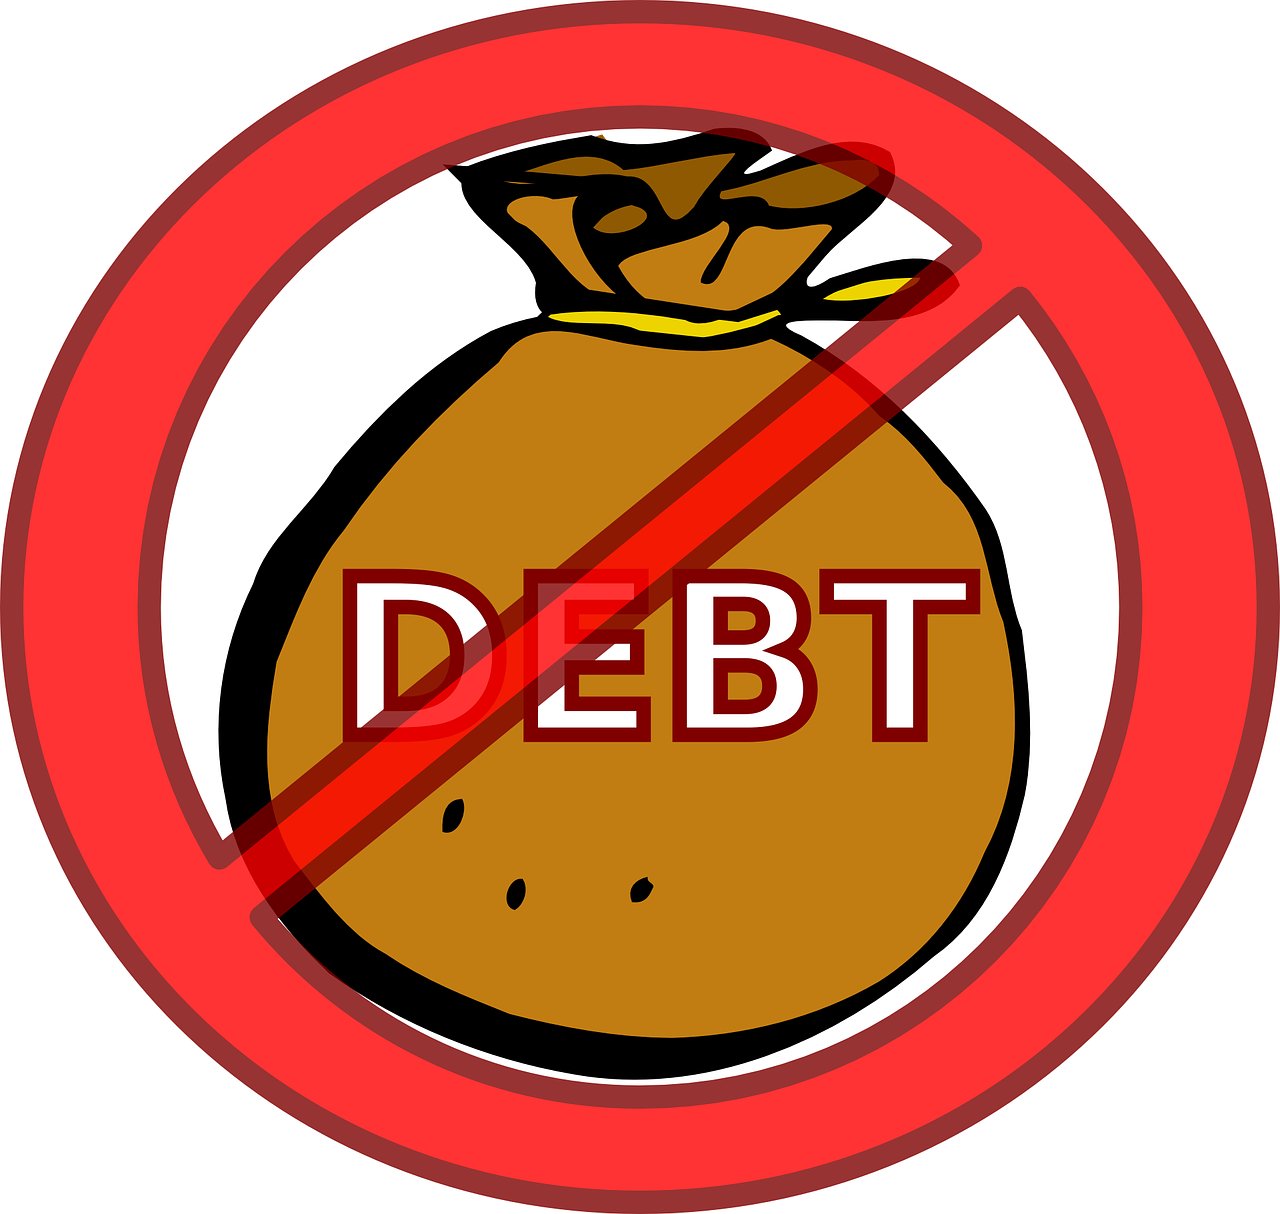 debt eliminate loan free photo